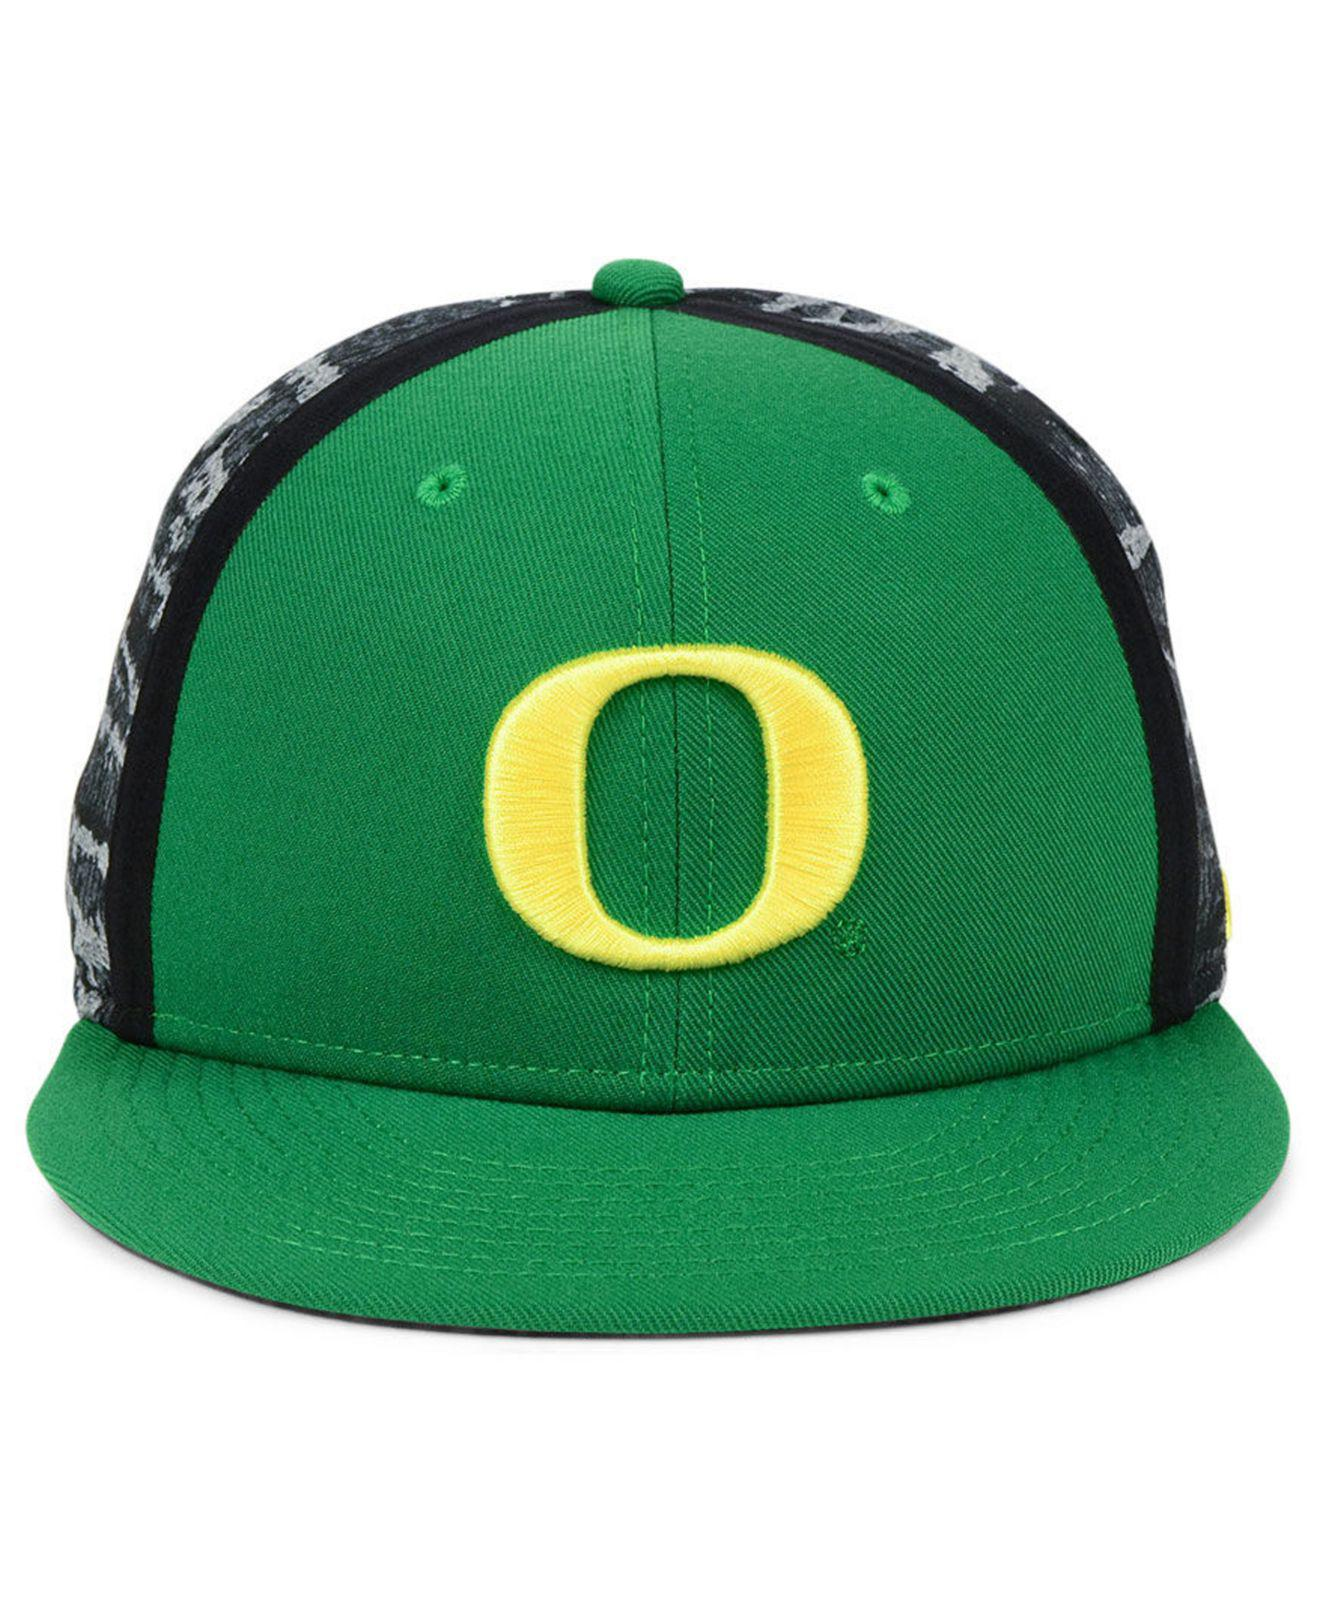 premium selection 64be0 b87ea Lyst - Nike Oregon Ducks Dna True Snapback Cap in Green for Men